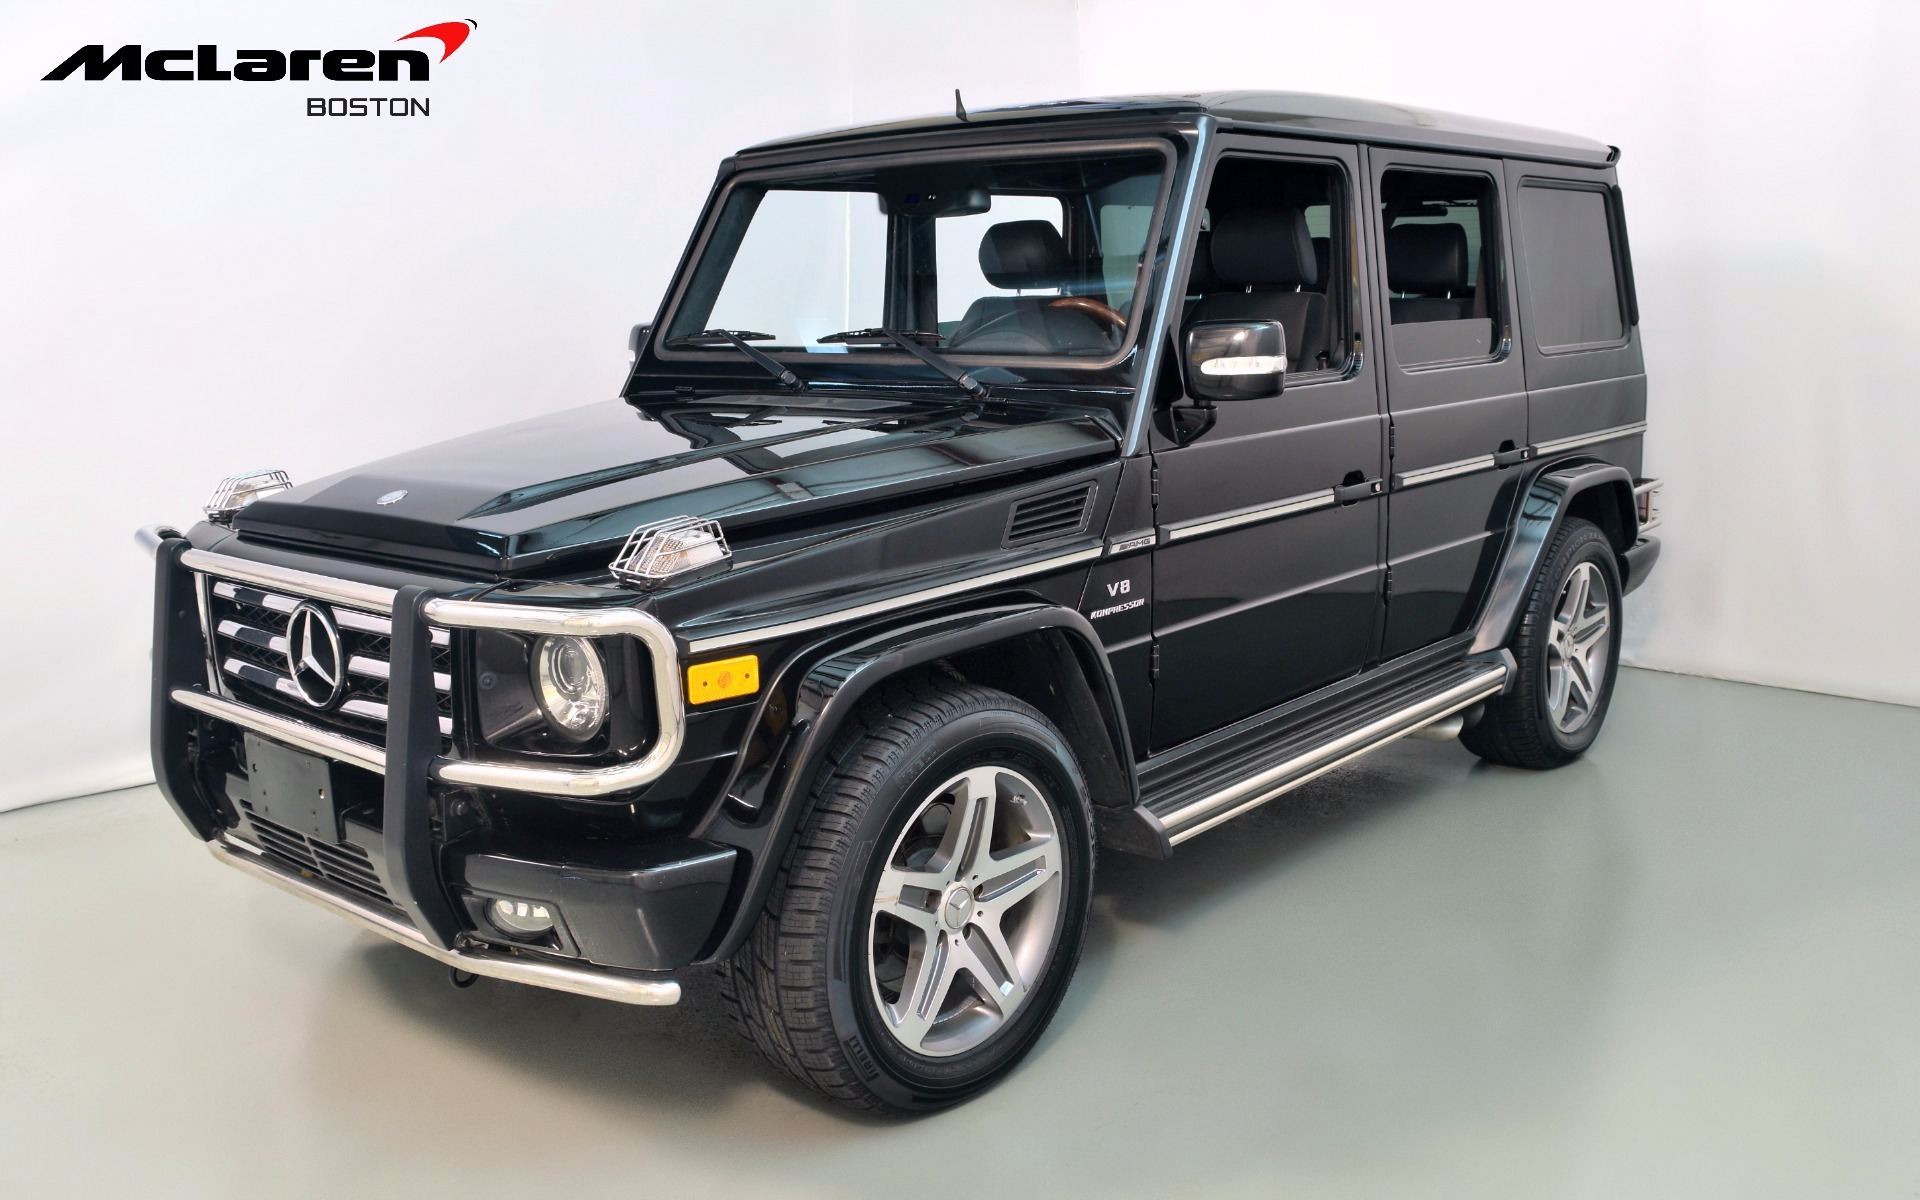 2009 mercedes benz g class 5 5l amg for sale in norwell for Mercedes benz g class mpg